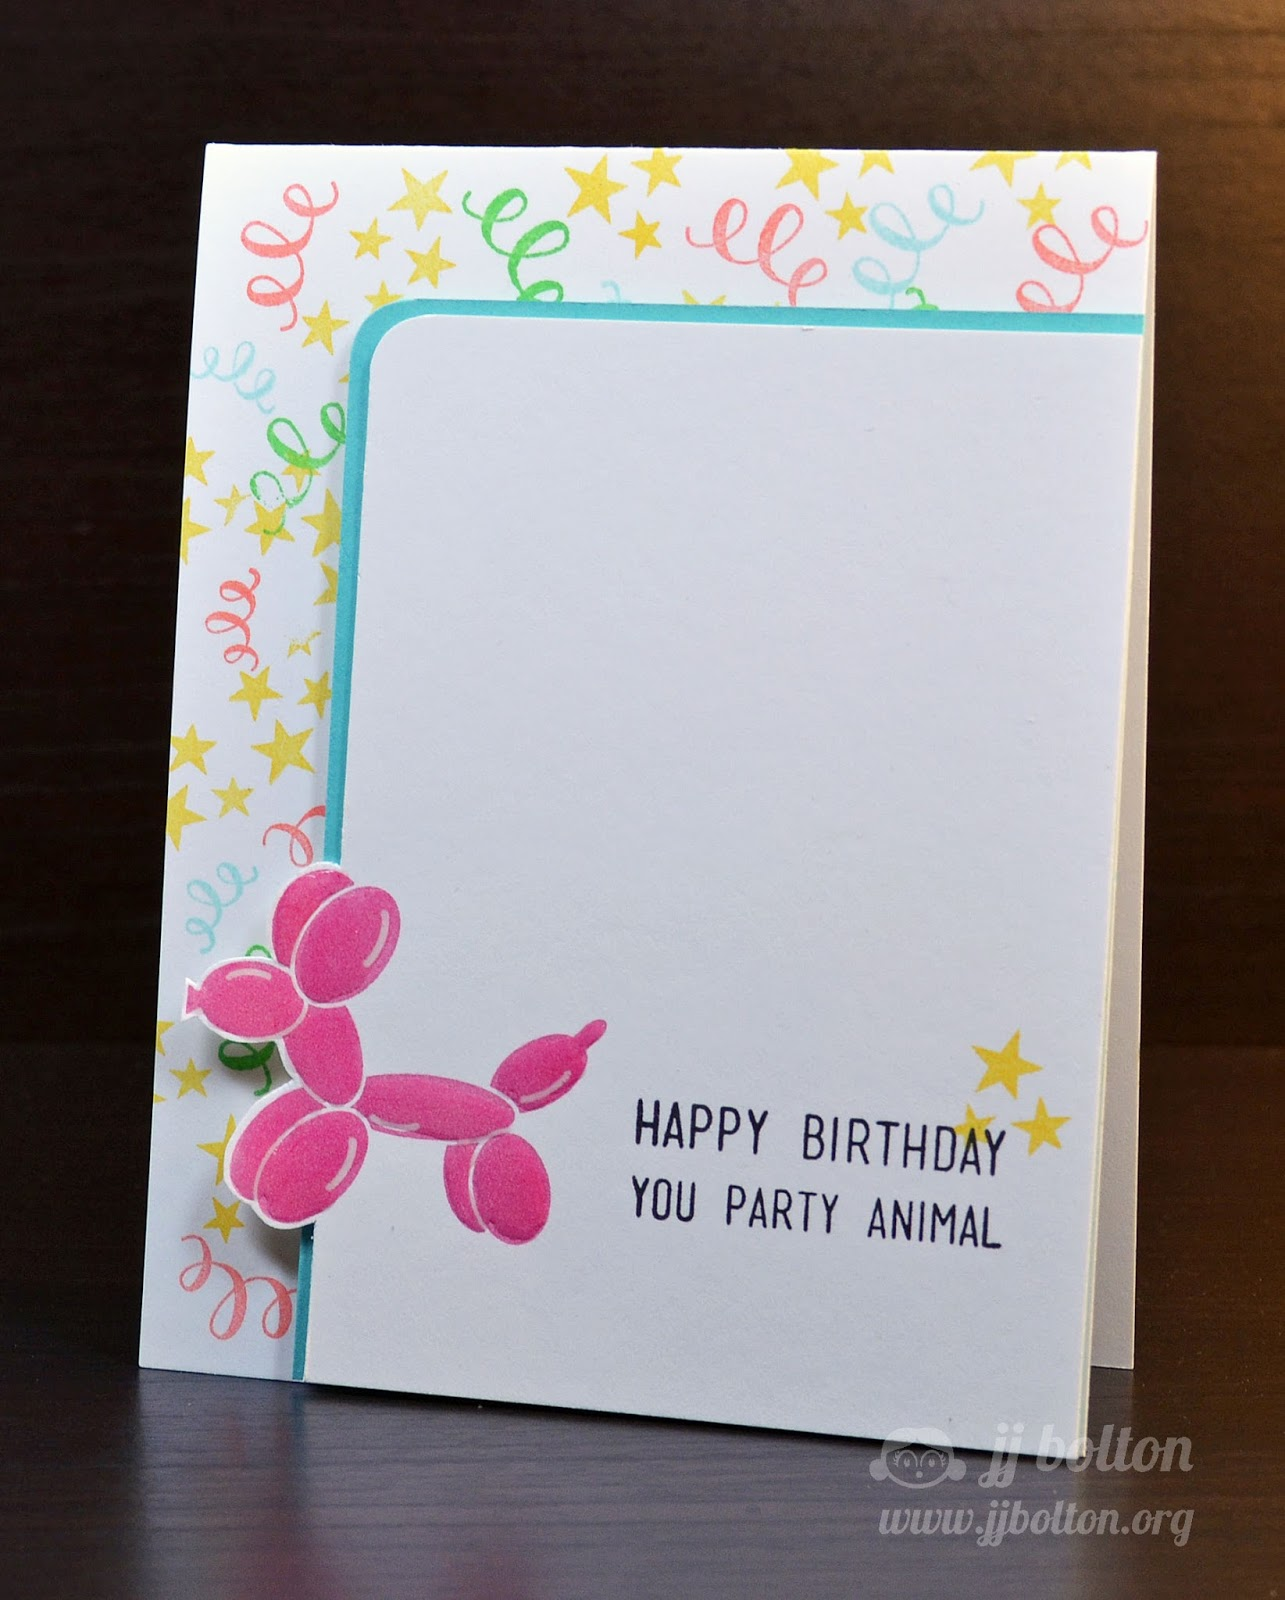 Jj bolton handmade cards avery elle junejuly stamp highlight you can see that i covered the balloon animal in glossy accents just for a bit of dimension got that trick from nina just a fun birthday card m4hsunfo